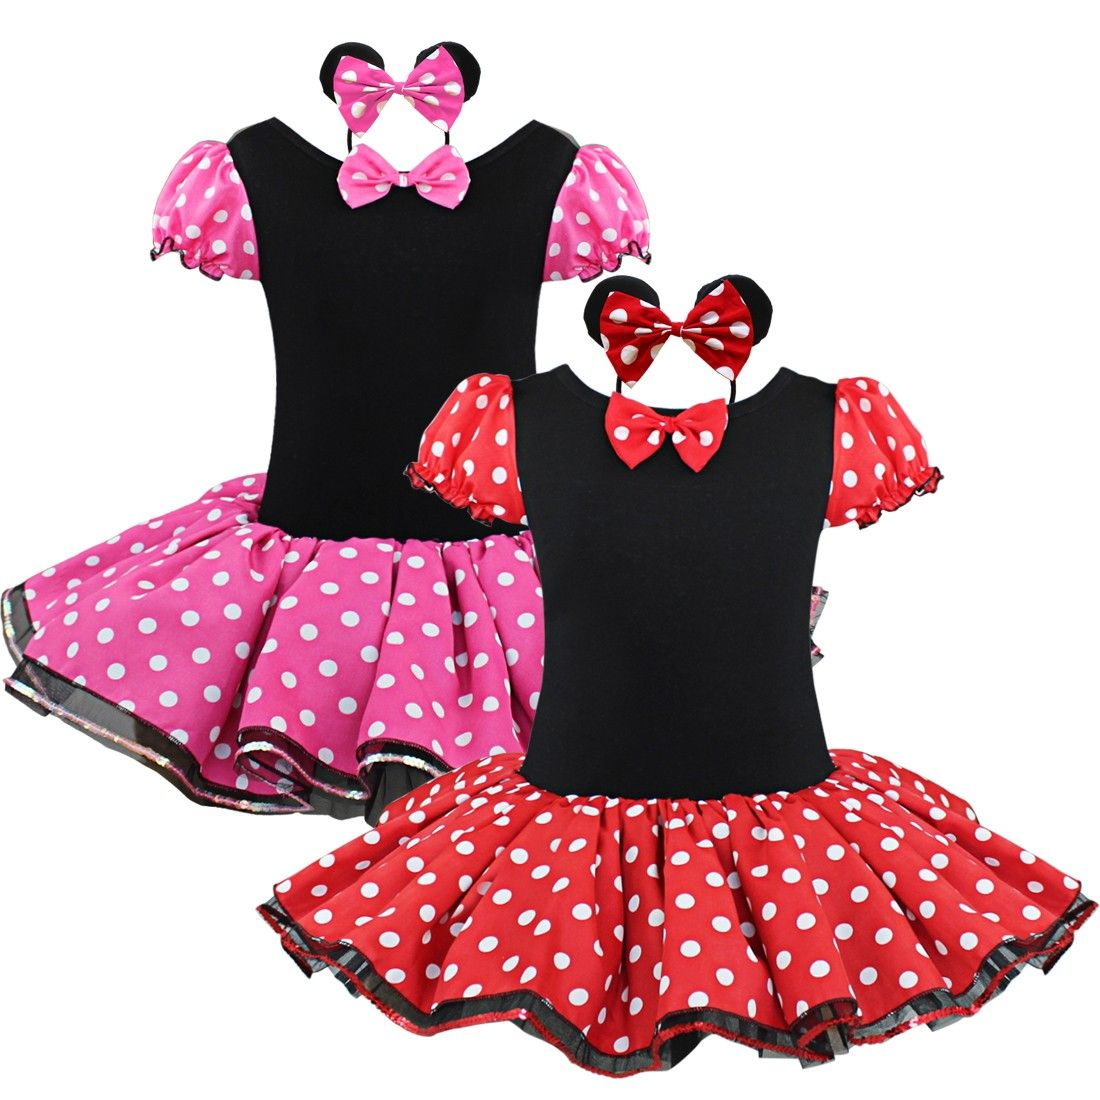 21480f4cb iEFiEL Girls Halloween Minnie Mouse Party Costume Tutu Skirt ...